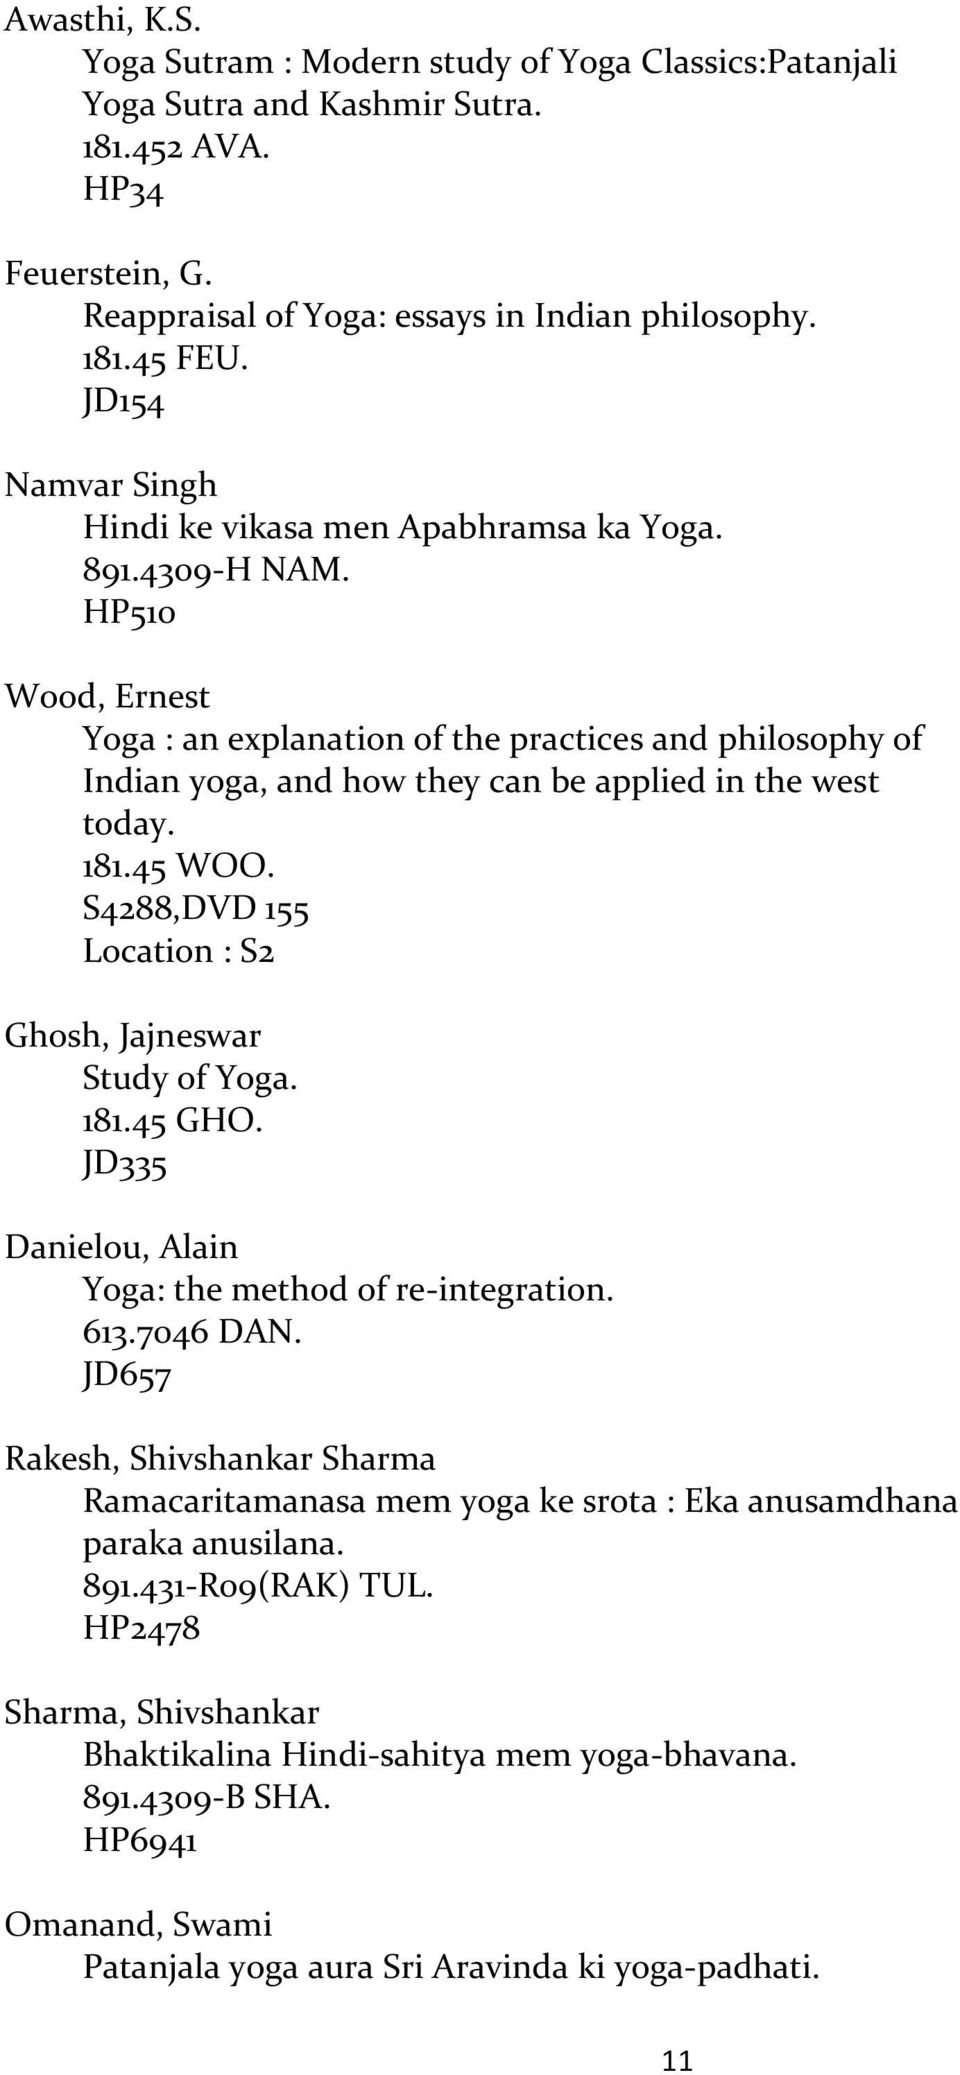 Best Business School Essays Hp Wood Ernest Yoga  An Explanation Of The Practices And Philosophy Of  Indian Yoga Thesis In Essay also Example Of A Thesis Statement For An Essay Bibliography On Yoga Kalanidhi Reference Library  Pdf Essays On Science And Religion